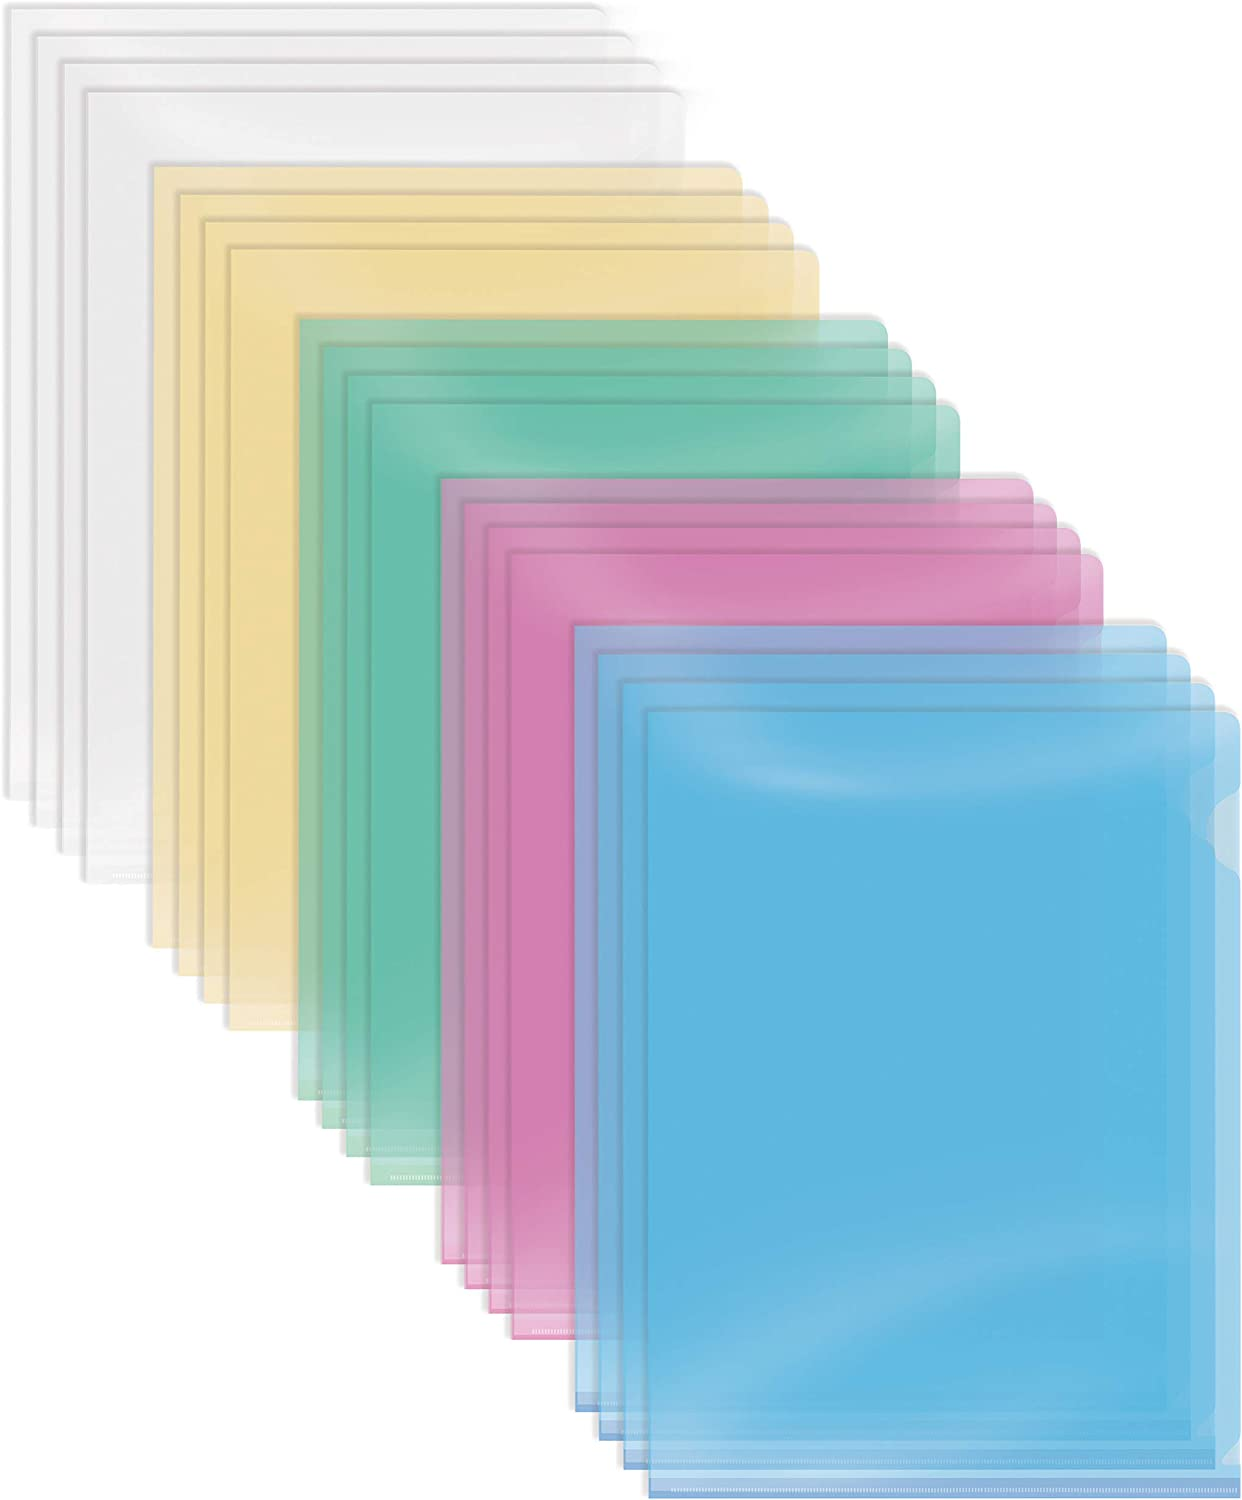 """Poly Project Pockets, 50 Pack, Plastic File Jacket Sleeves for Letter Size Paper, Assorted 5 Translucent Colors, by Better Office Products, Project Folder File Jackets, 9"""" x 11.5"""", 50 Pack"""